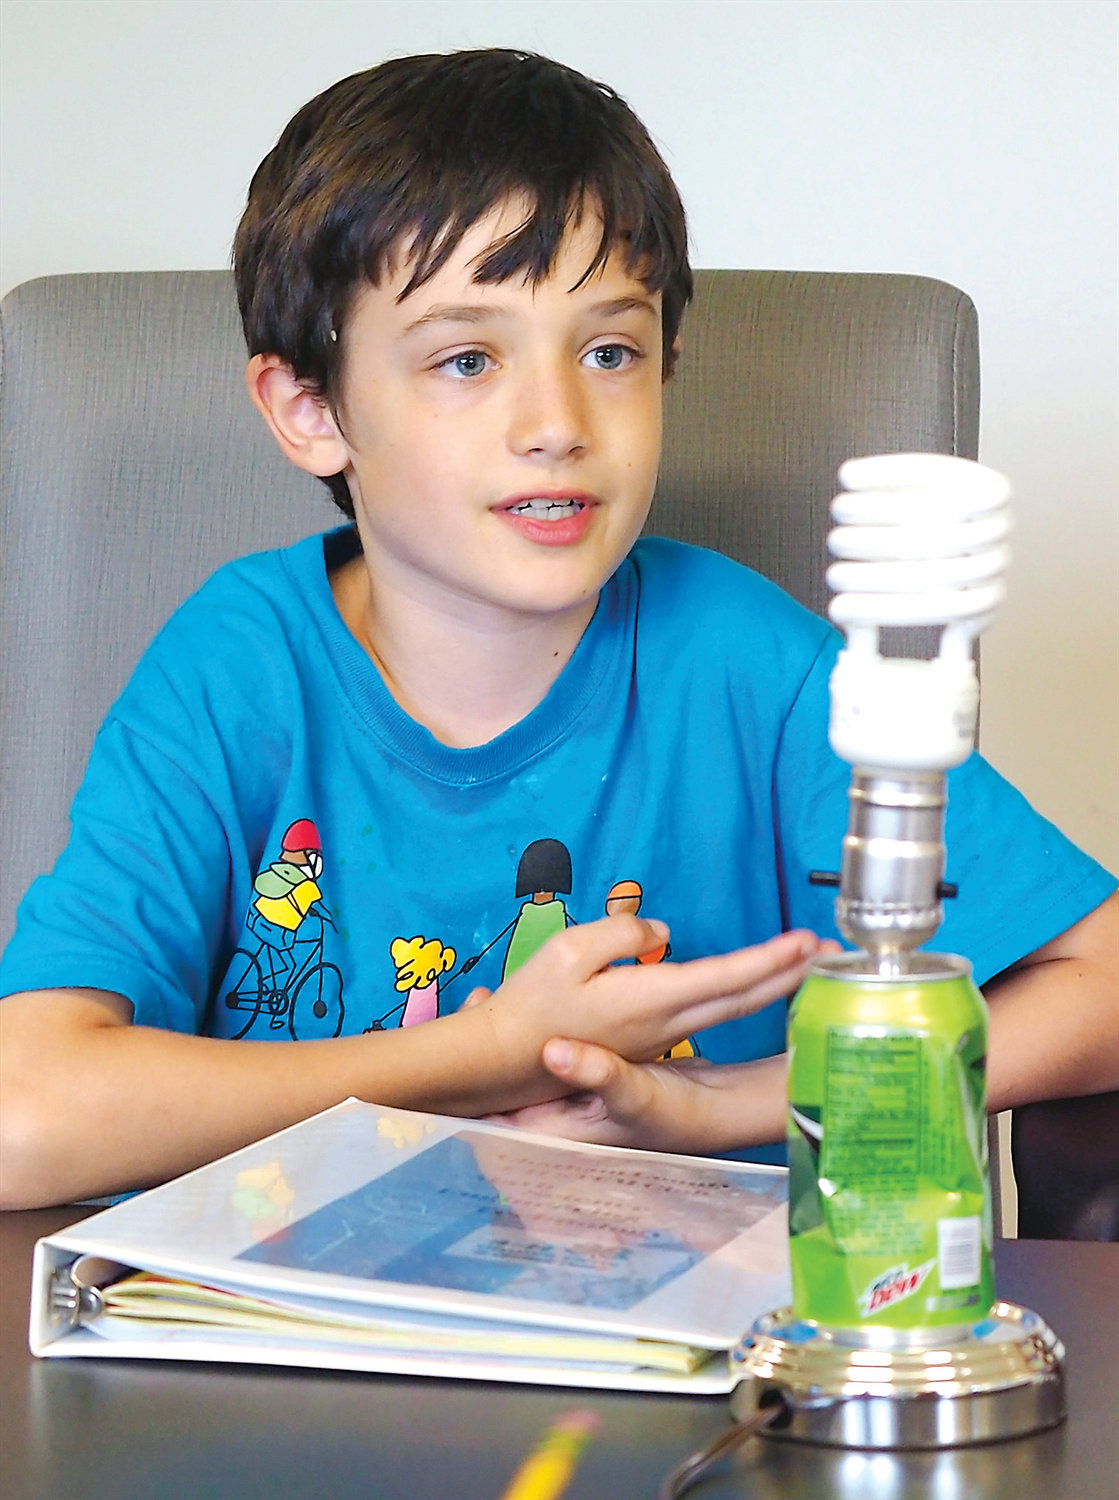 Finn Cobler, a 4th grader, said his favorite thing about STEM Club so far was building the lamp in front of him.